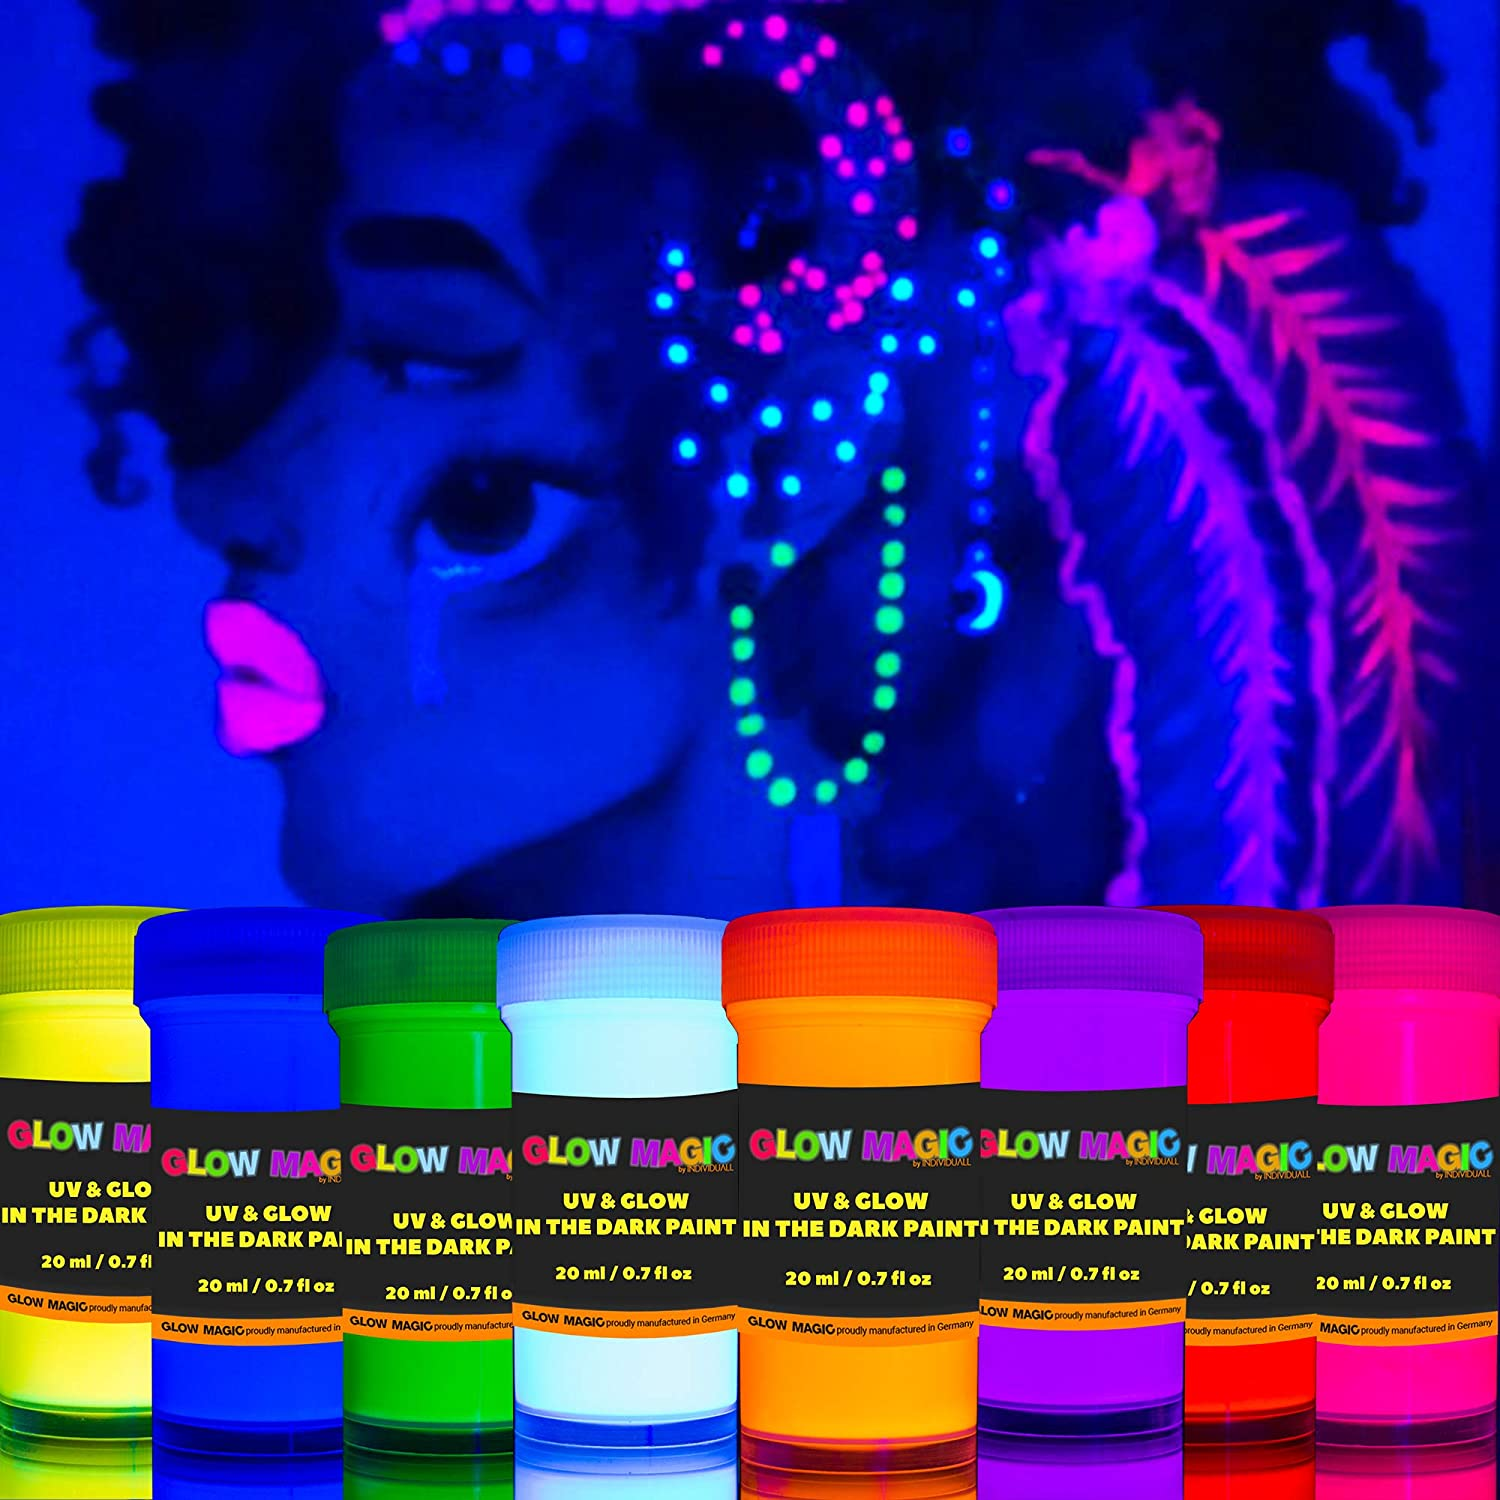 Glow Magic Glow in The Dark Paint 2-in-1 – Neon Glow Paint Set with UV Black Light Reflective Wall Paint – High Pigmentation – Perfect for Arts & Crafts, DIY, Kids Party Decoration, Set of 8